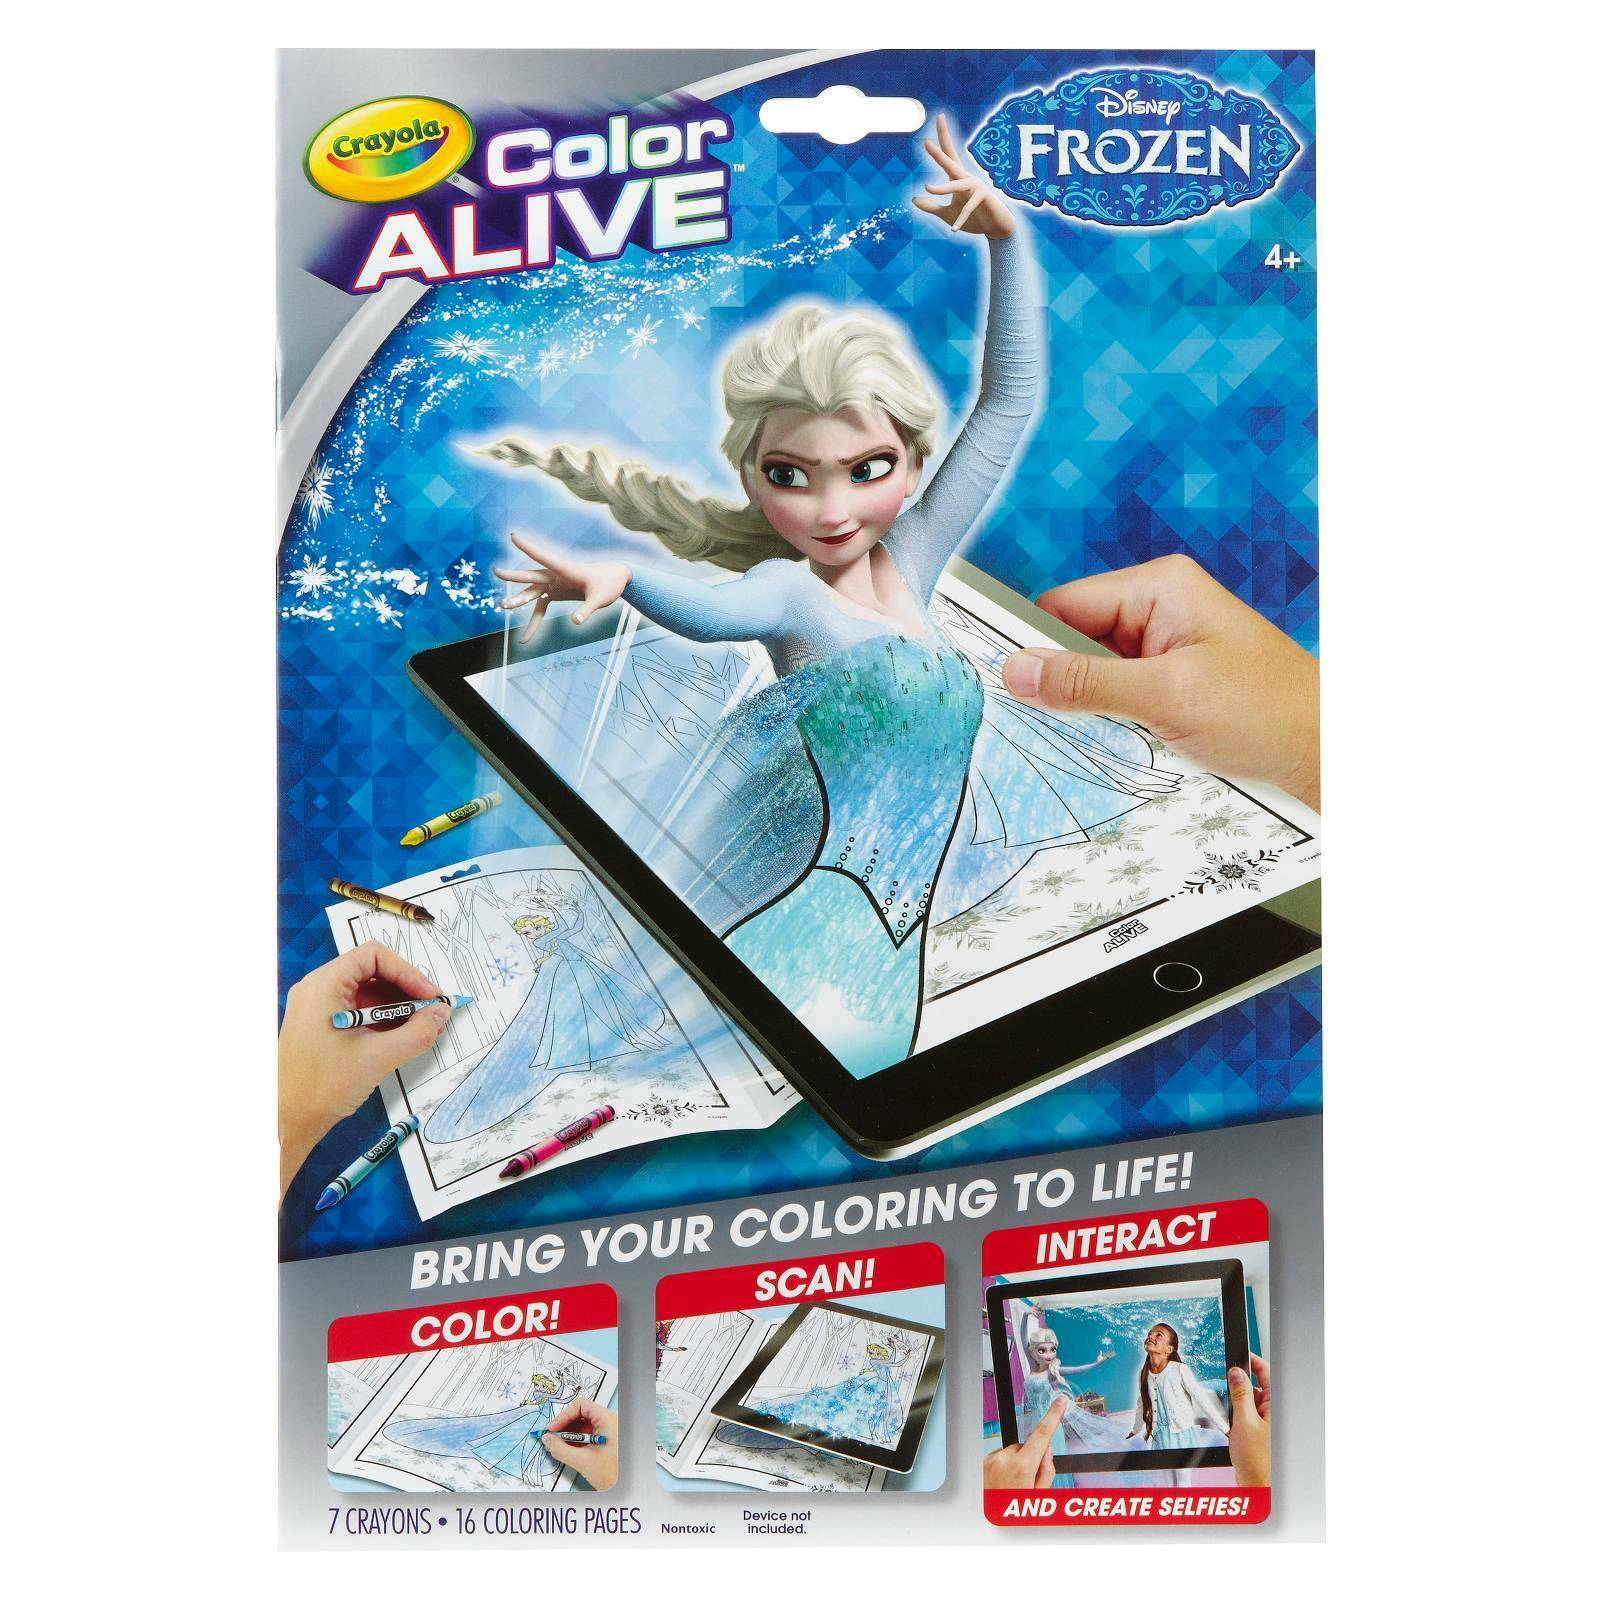 Crayola Color Alive Disney\'s Frozen 16 Coloring Pages and 7 Crayons ...